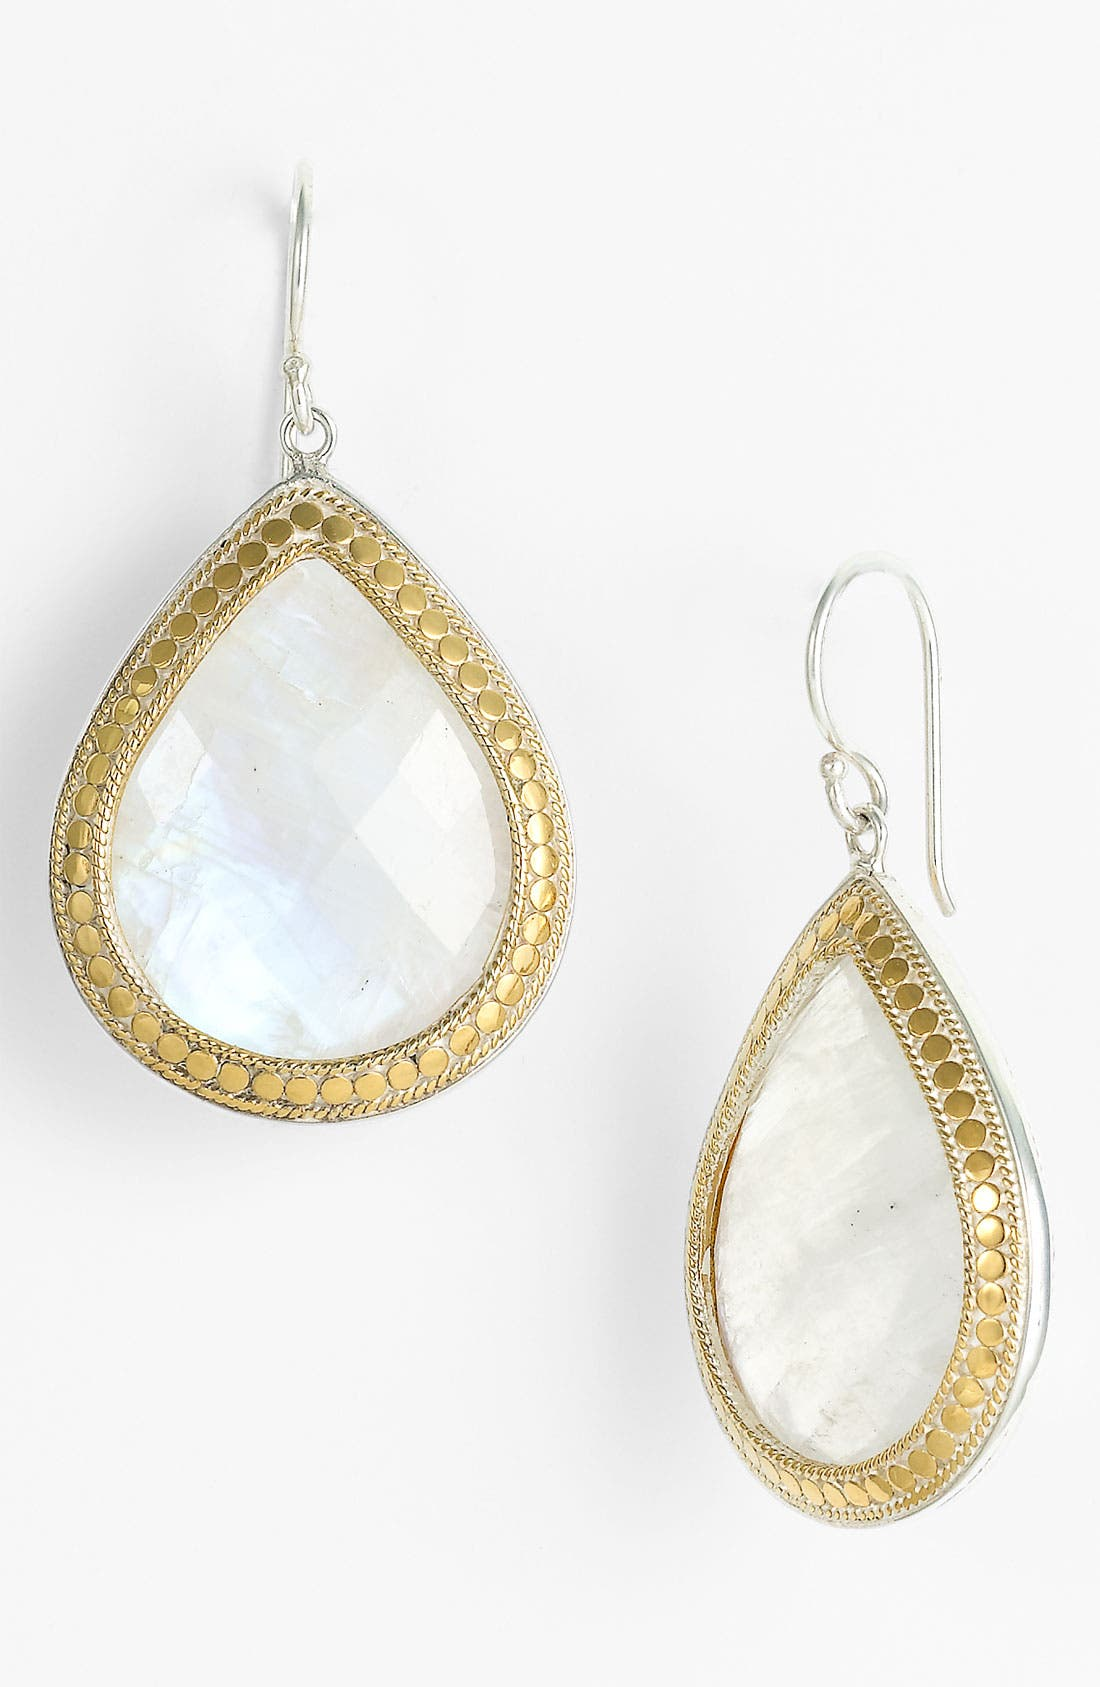 Alternate Image 1 Selected - Anna Beck 'Gili' Large Stone Teardrop Earrings (Nordstrom Exclusive)